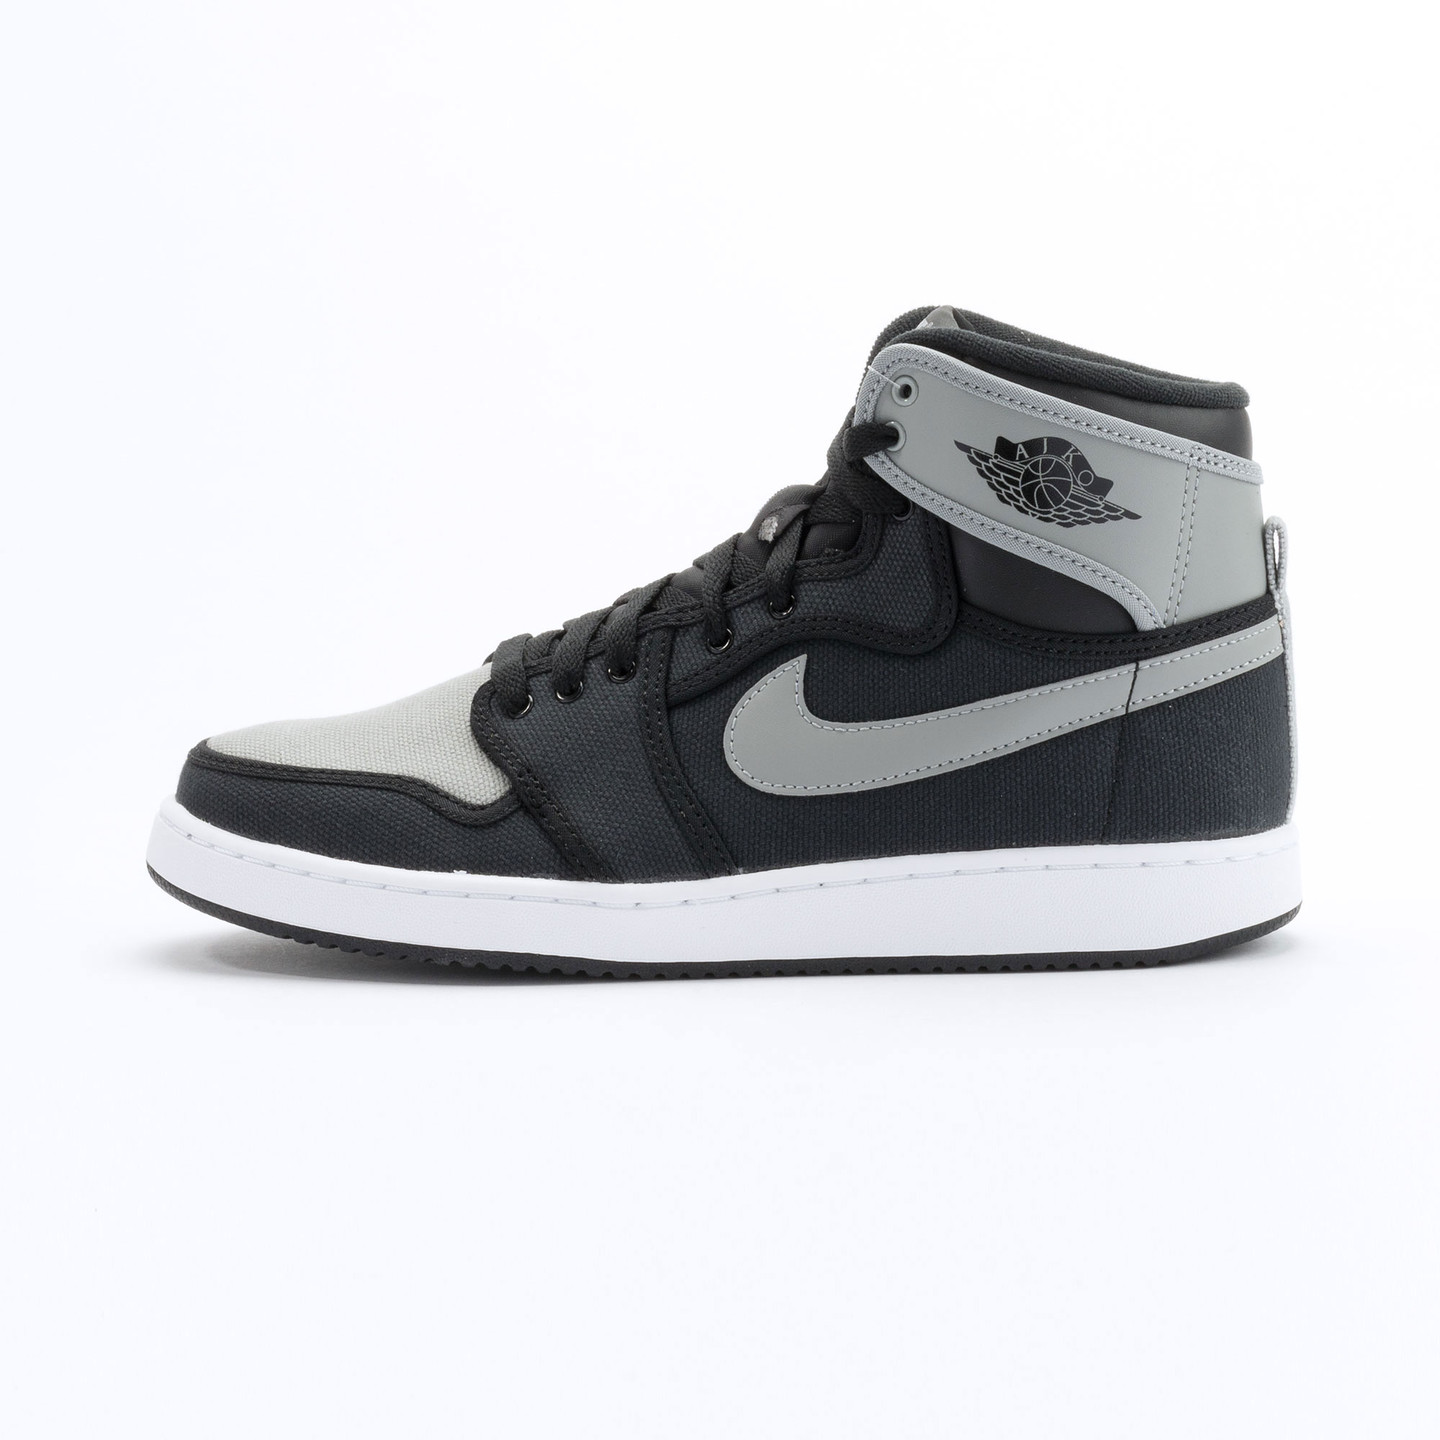 Nike Air Jordan 1 KO High OG Black / Shadow Grey / White 638471-003-45